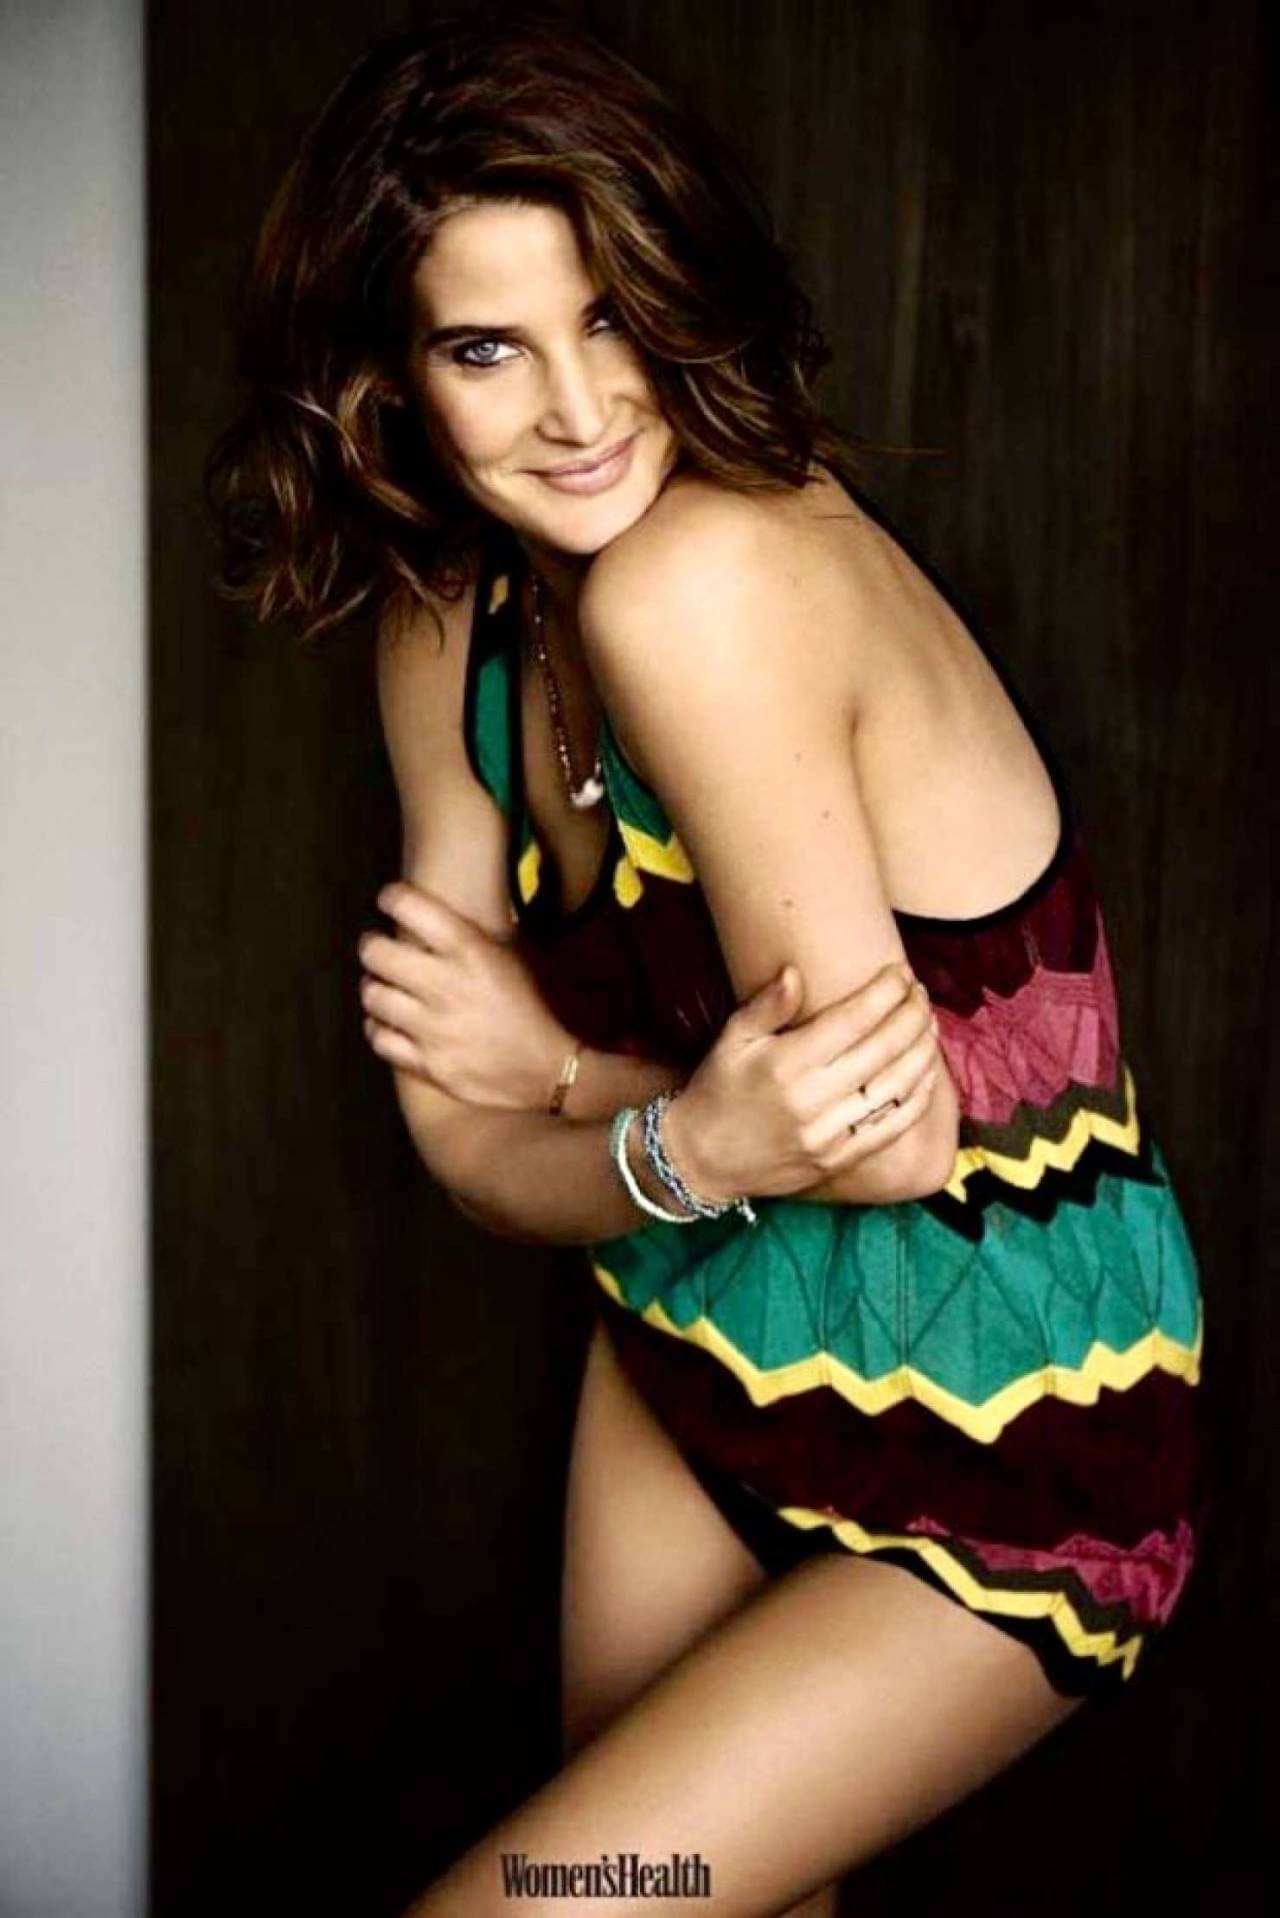 cobie smulders awesome pictures